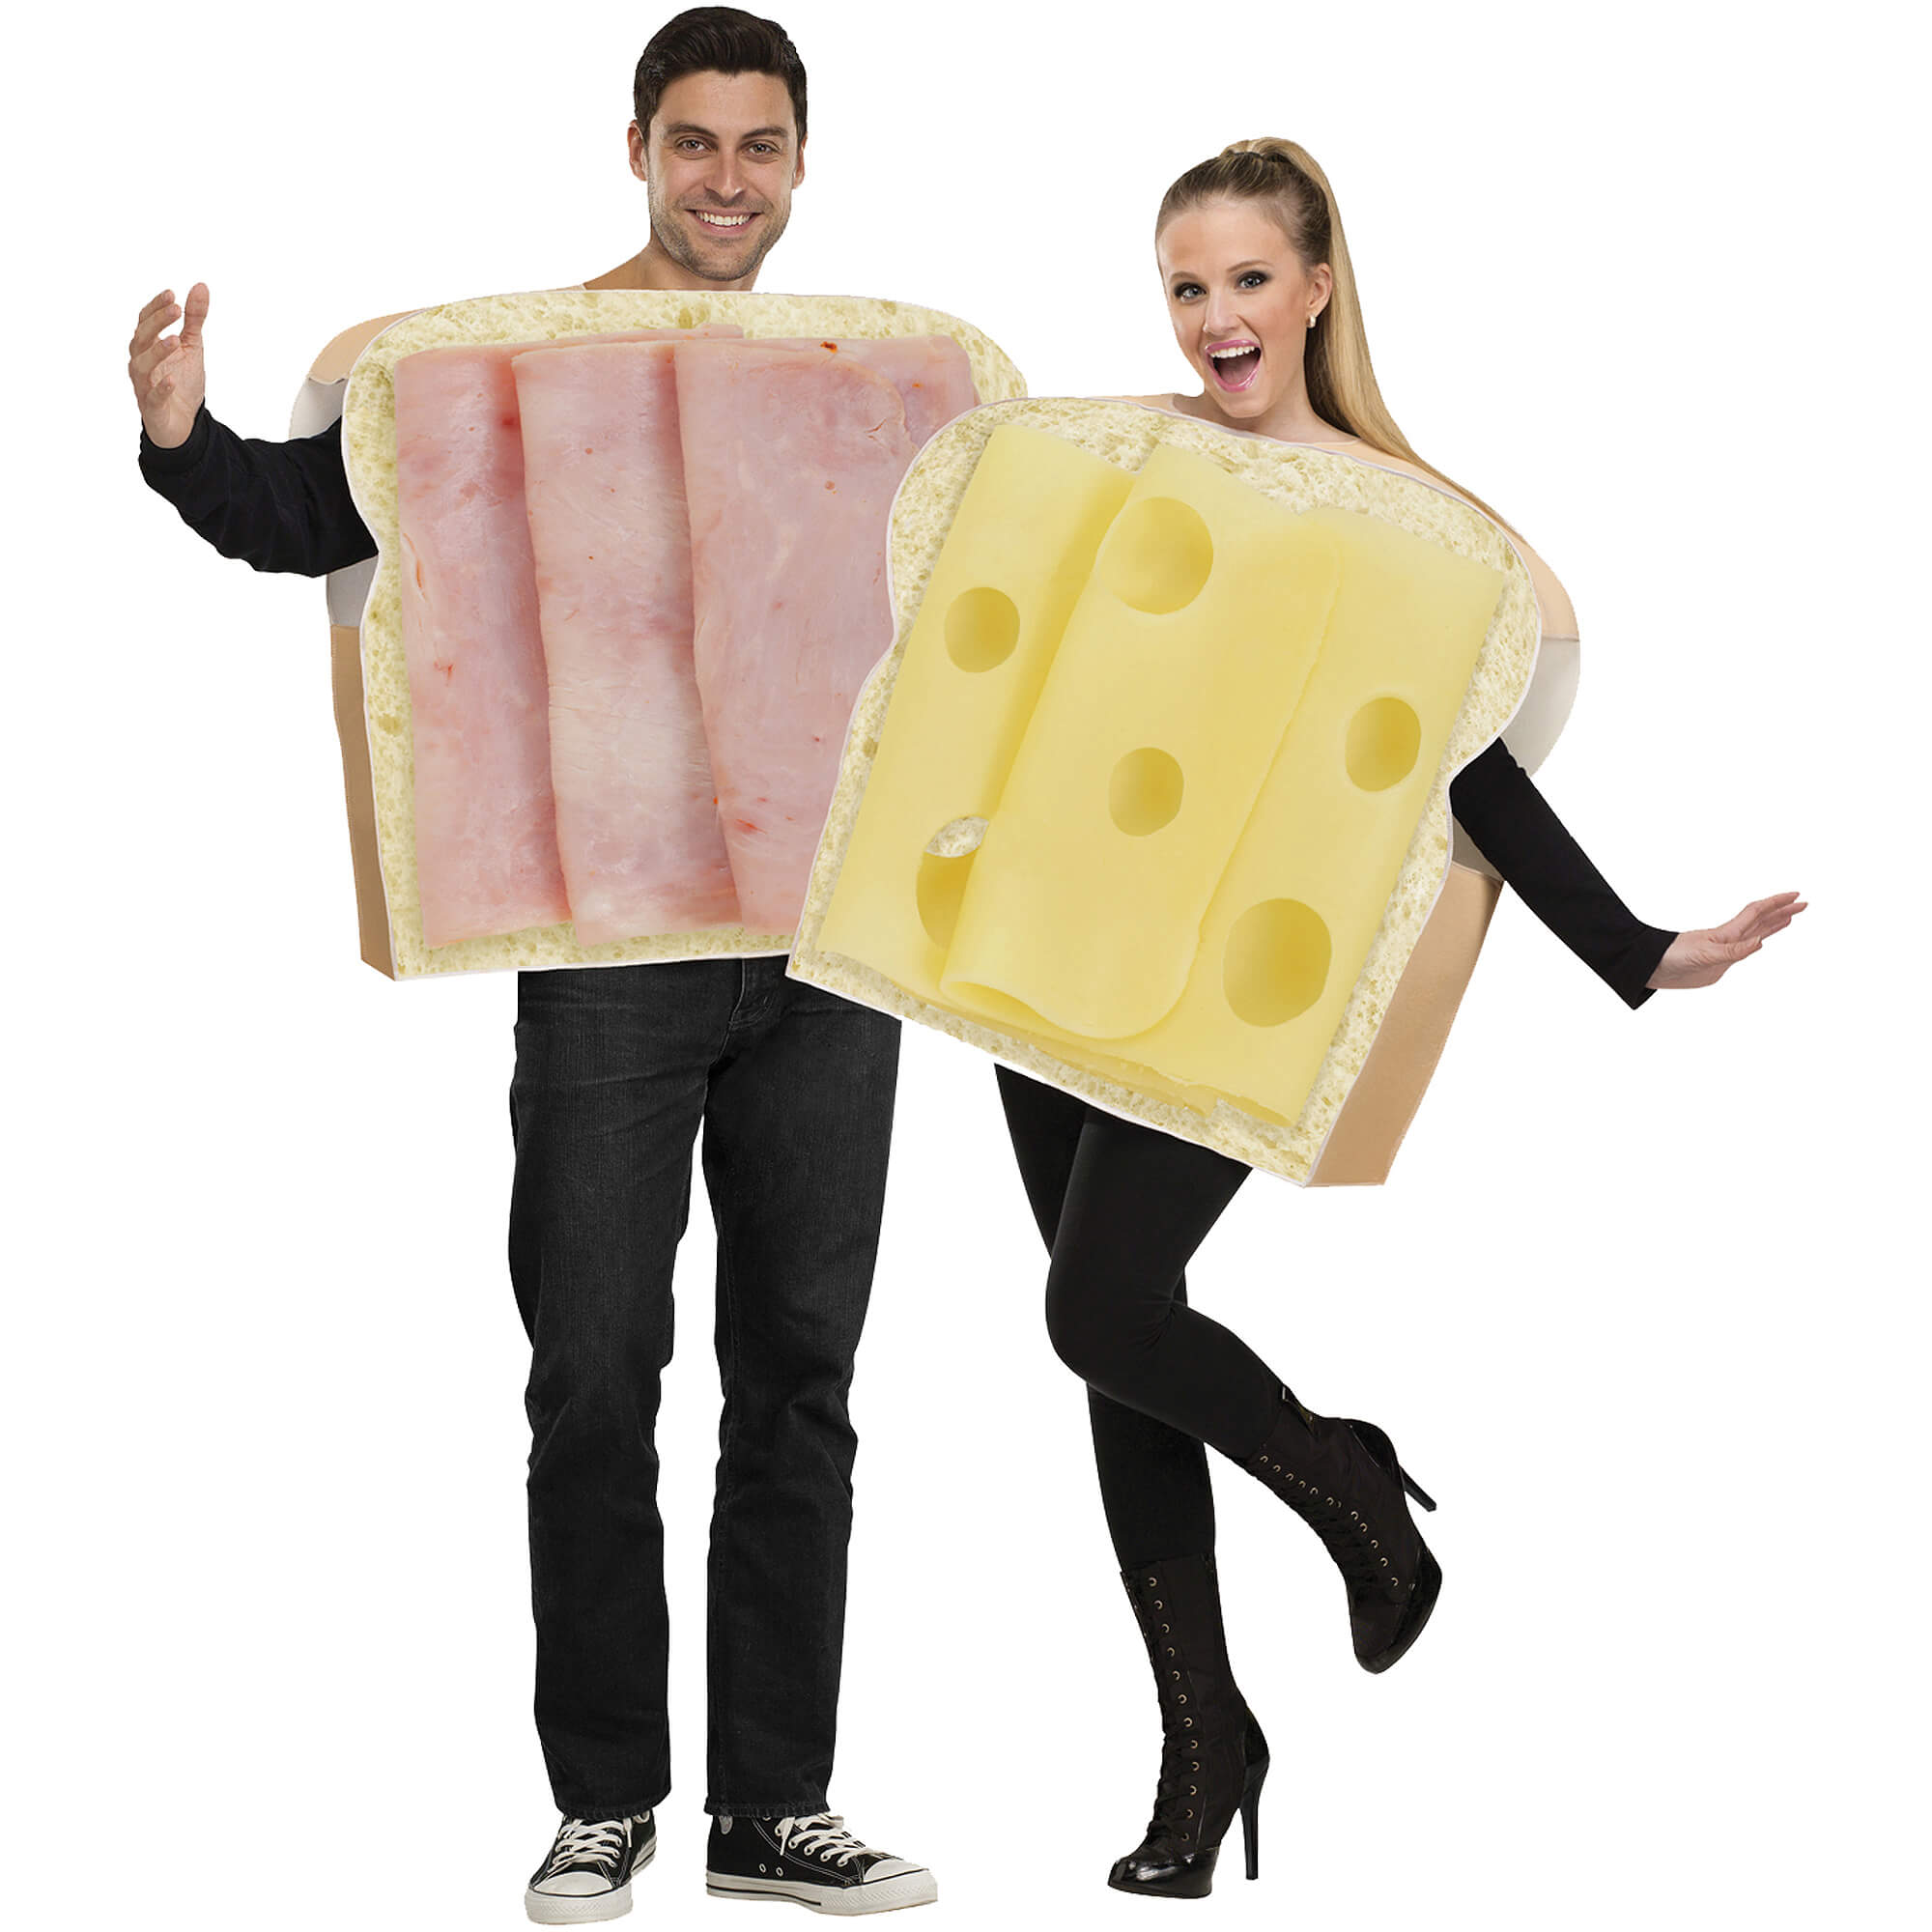 ham and cheese funny halloween costume for couple